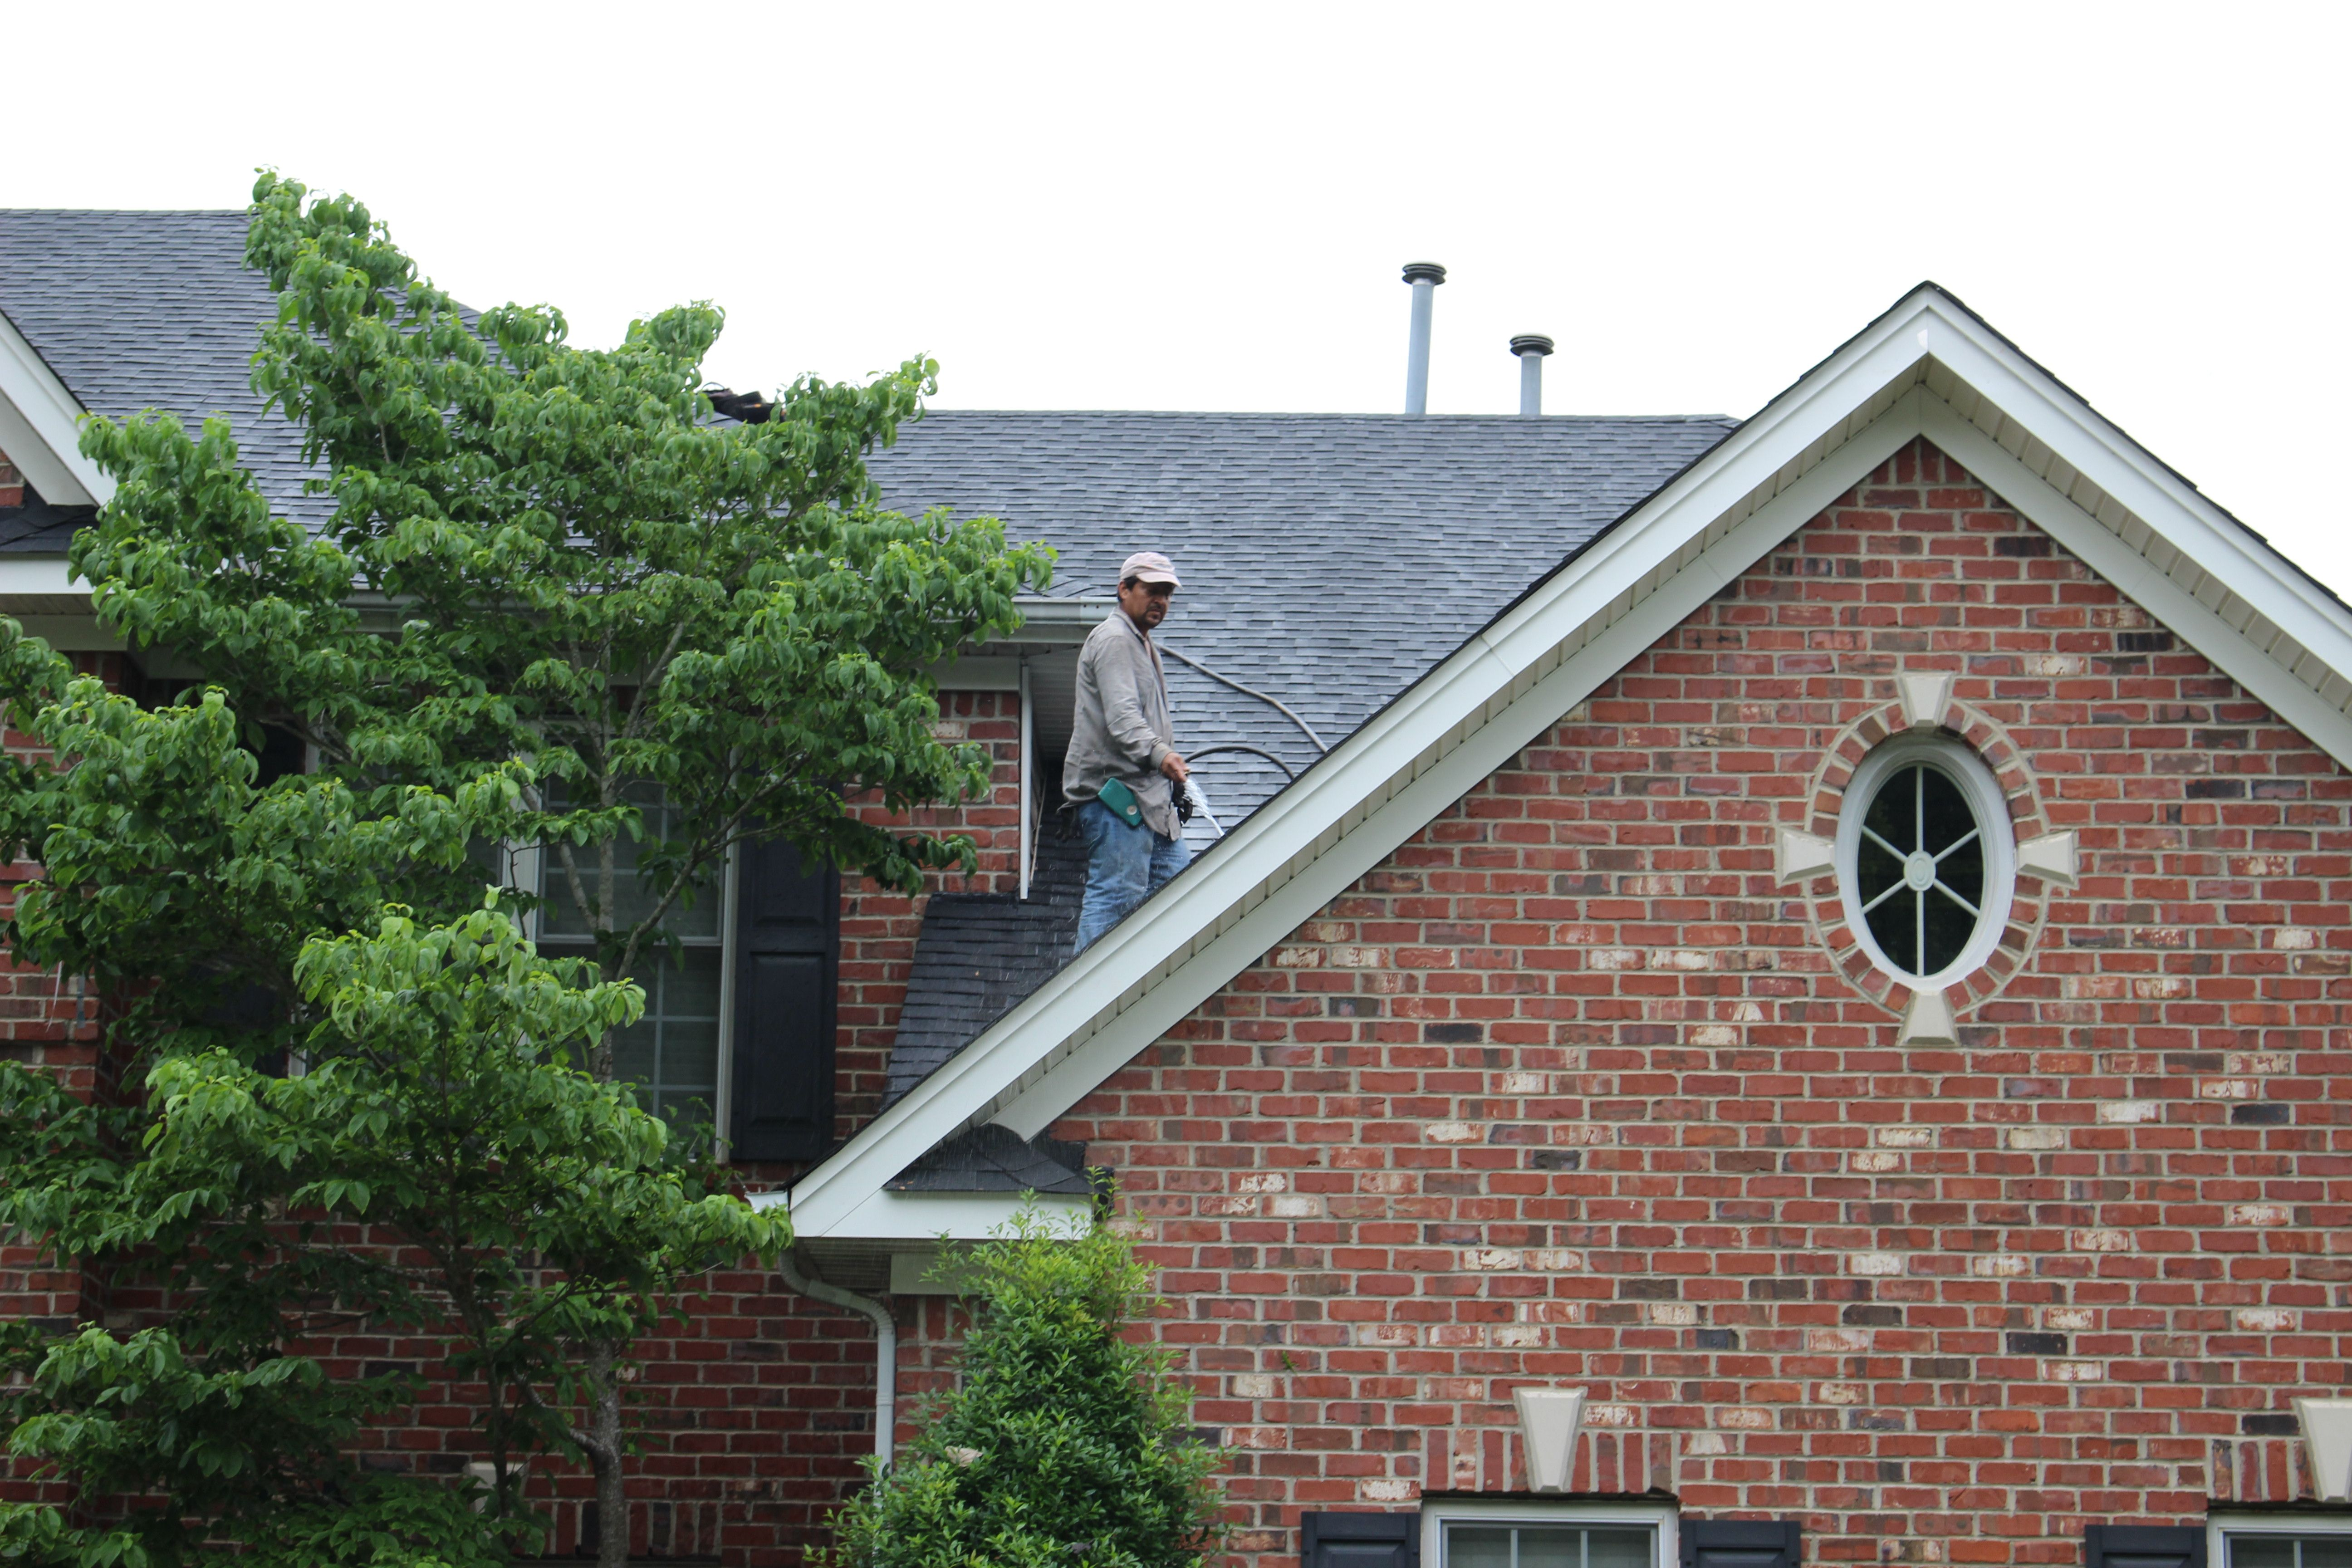 After Photo Showing Our Process Of Final Roof Inspection A Crs Foreman Washes Down The Roof Not Just To Clean But To Tho Architectural Shingles Residential Roofing House Styles